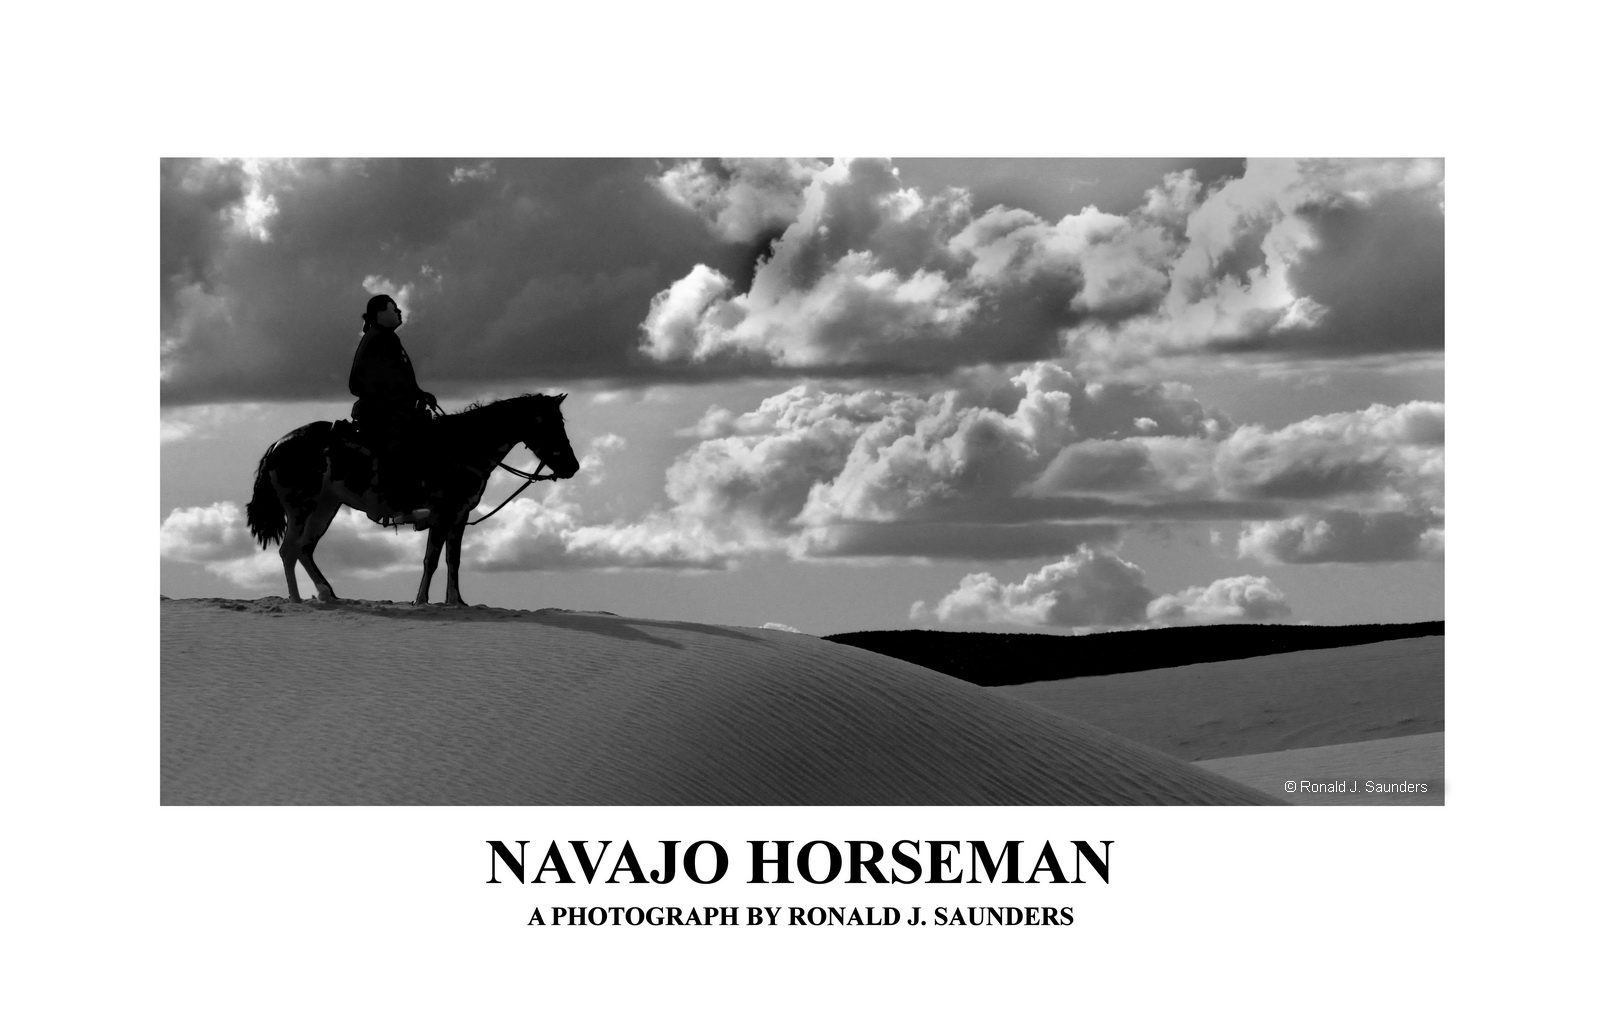 navajo, horse, horseman, dunes, sand, arizona chinli, clouds. B&W, poster, landscape, photo